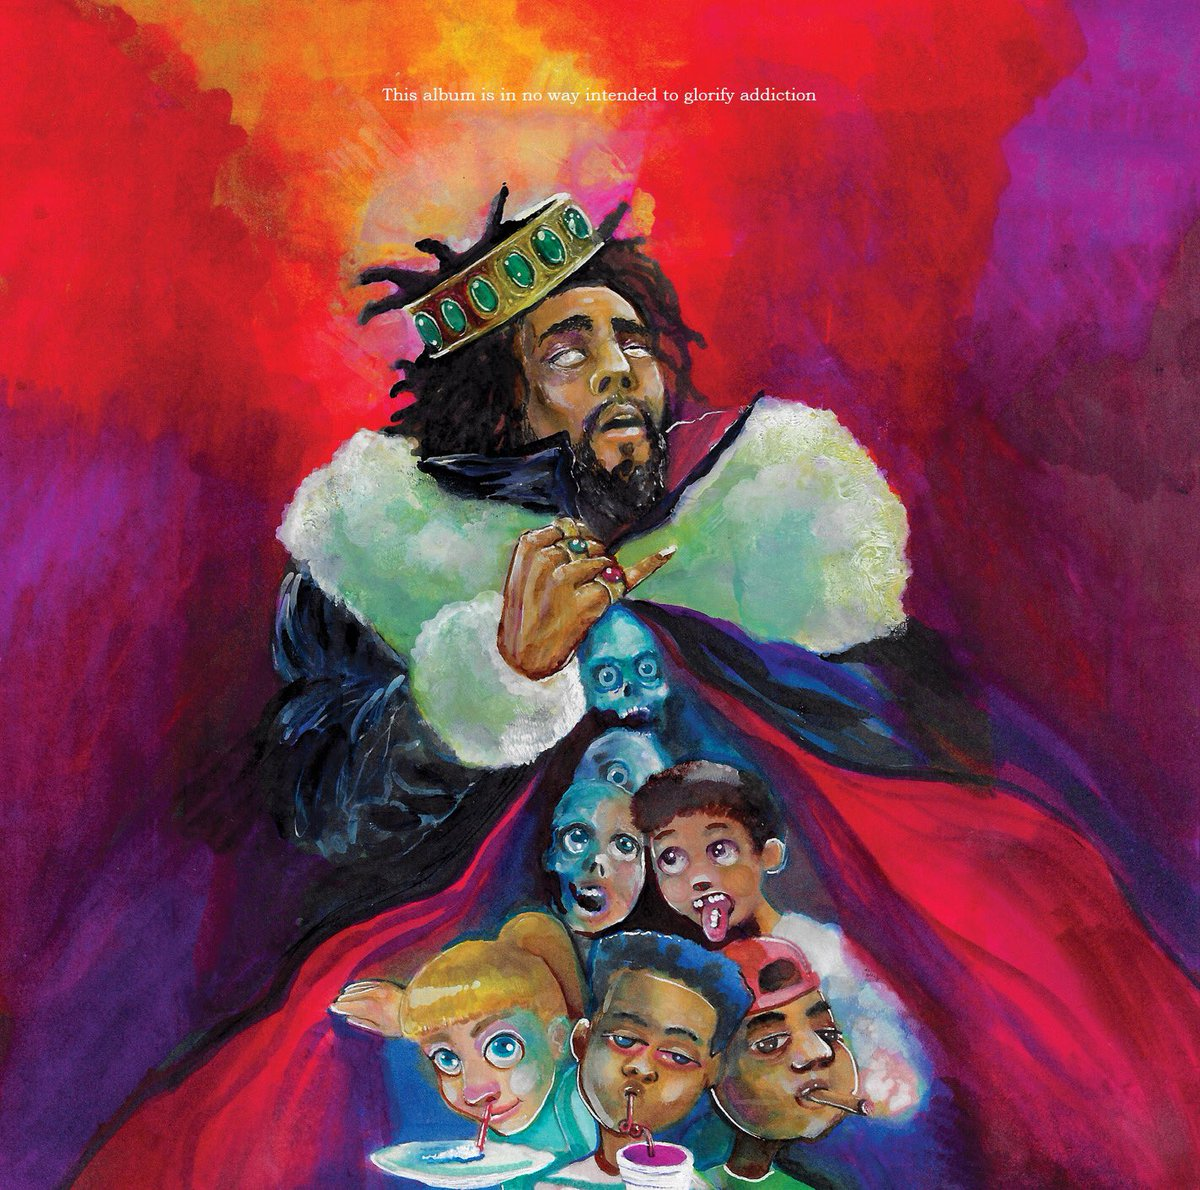 J. Cole Announces New Album. 'KOD' Holds Secret Concert In NYC